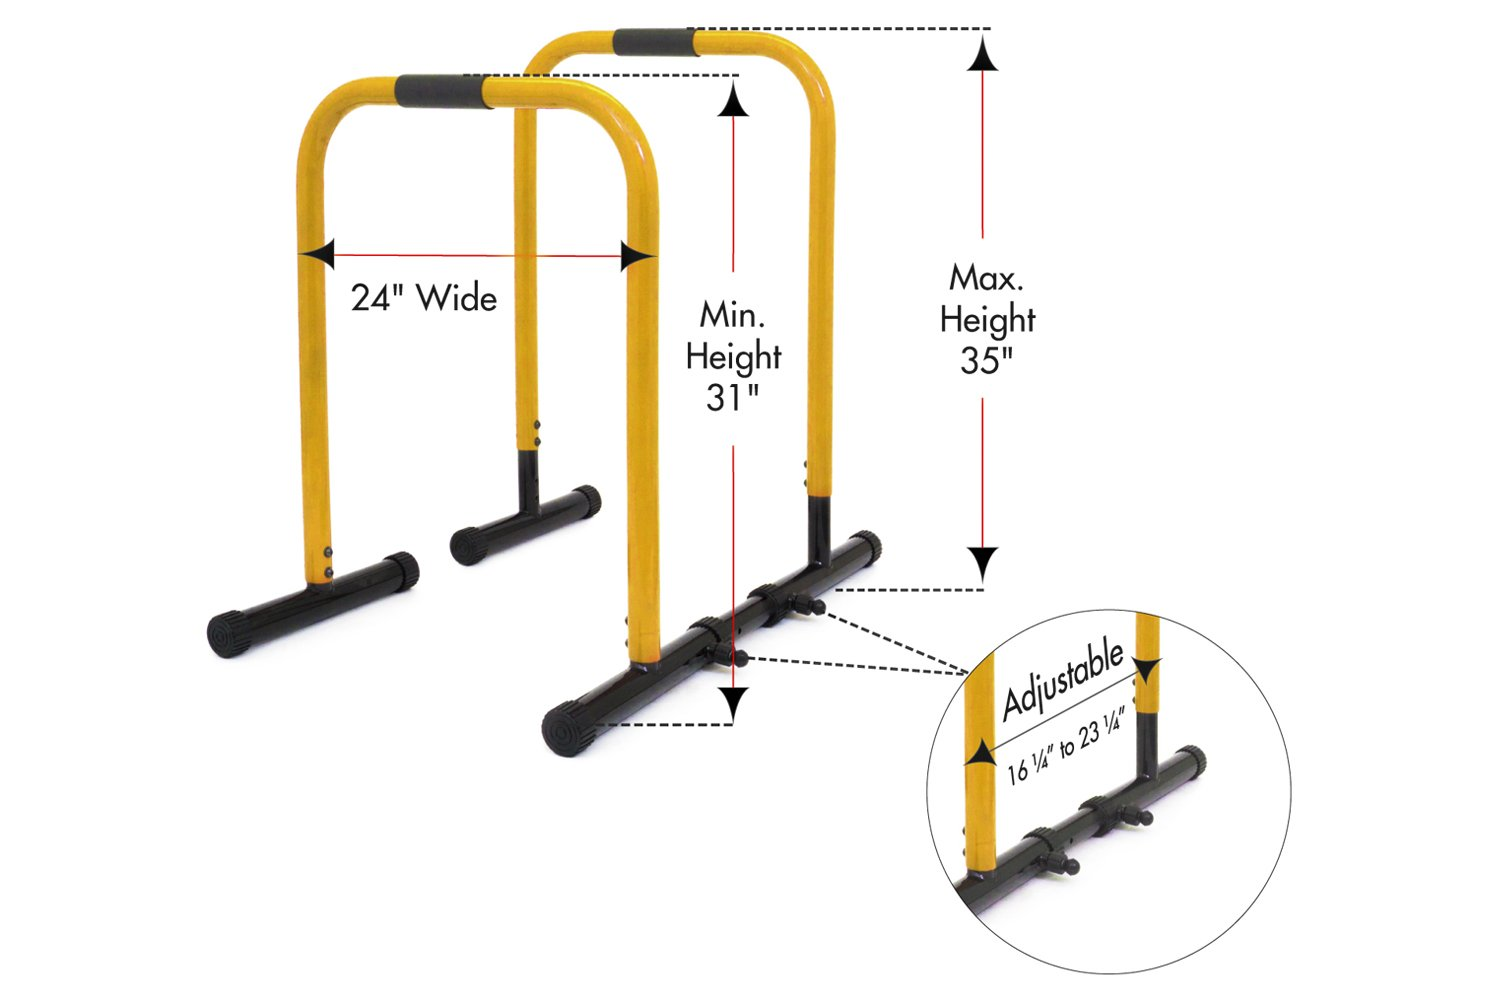 ProsourceFit Dip Stand Station, Heavy Duty Ultimate Body Press Bar with Safety Connector for Tricep Dips, Pull-Ups, Push-Ups, L-Sits, Yellow by ProsourceFit (Image #2)